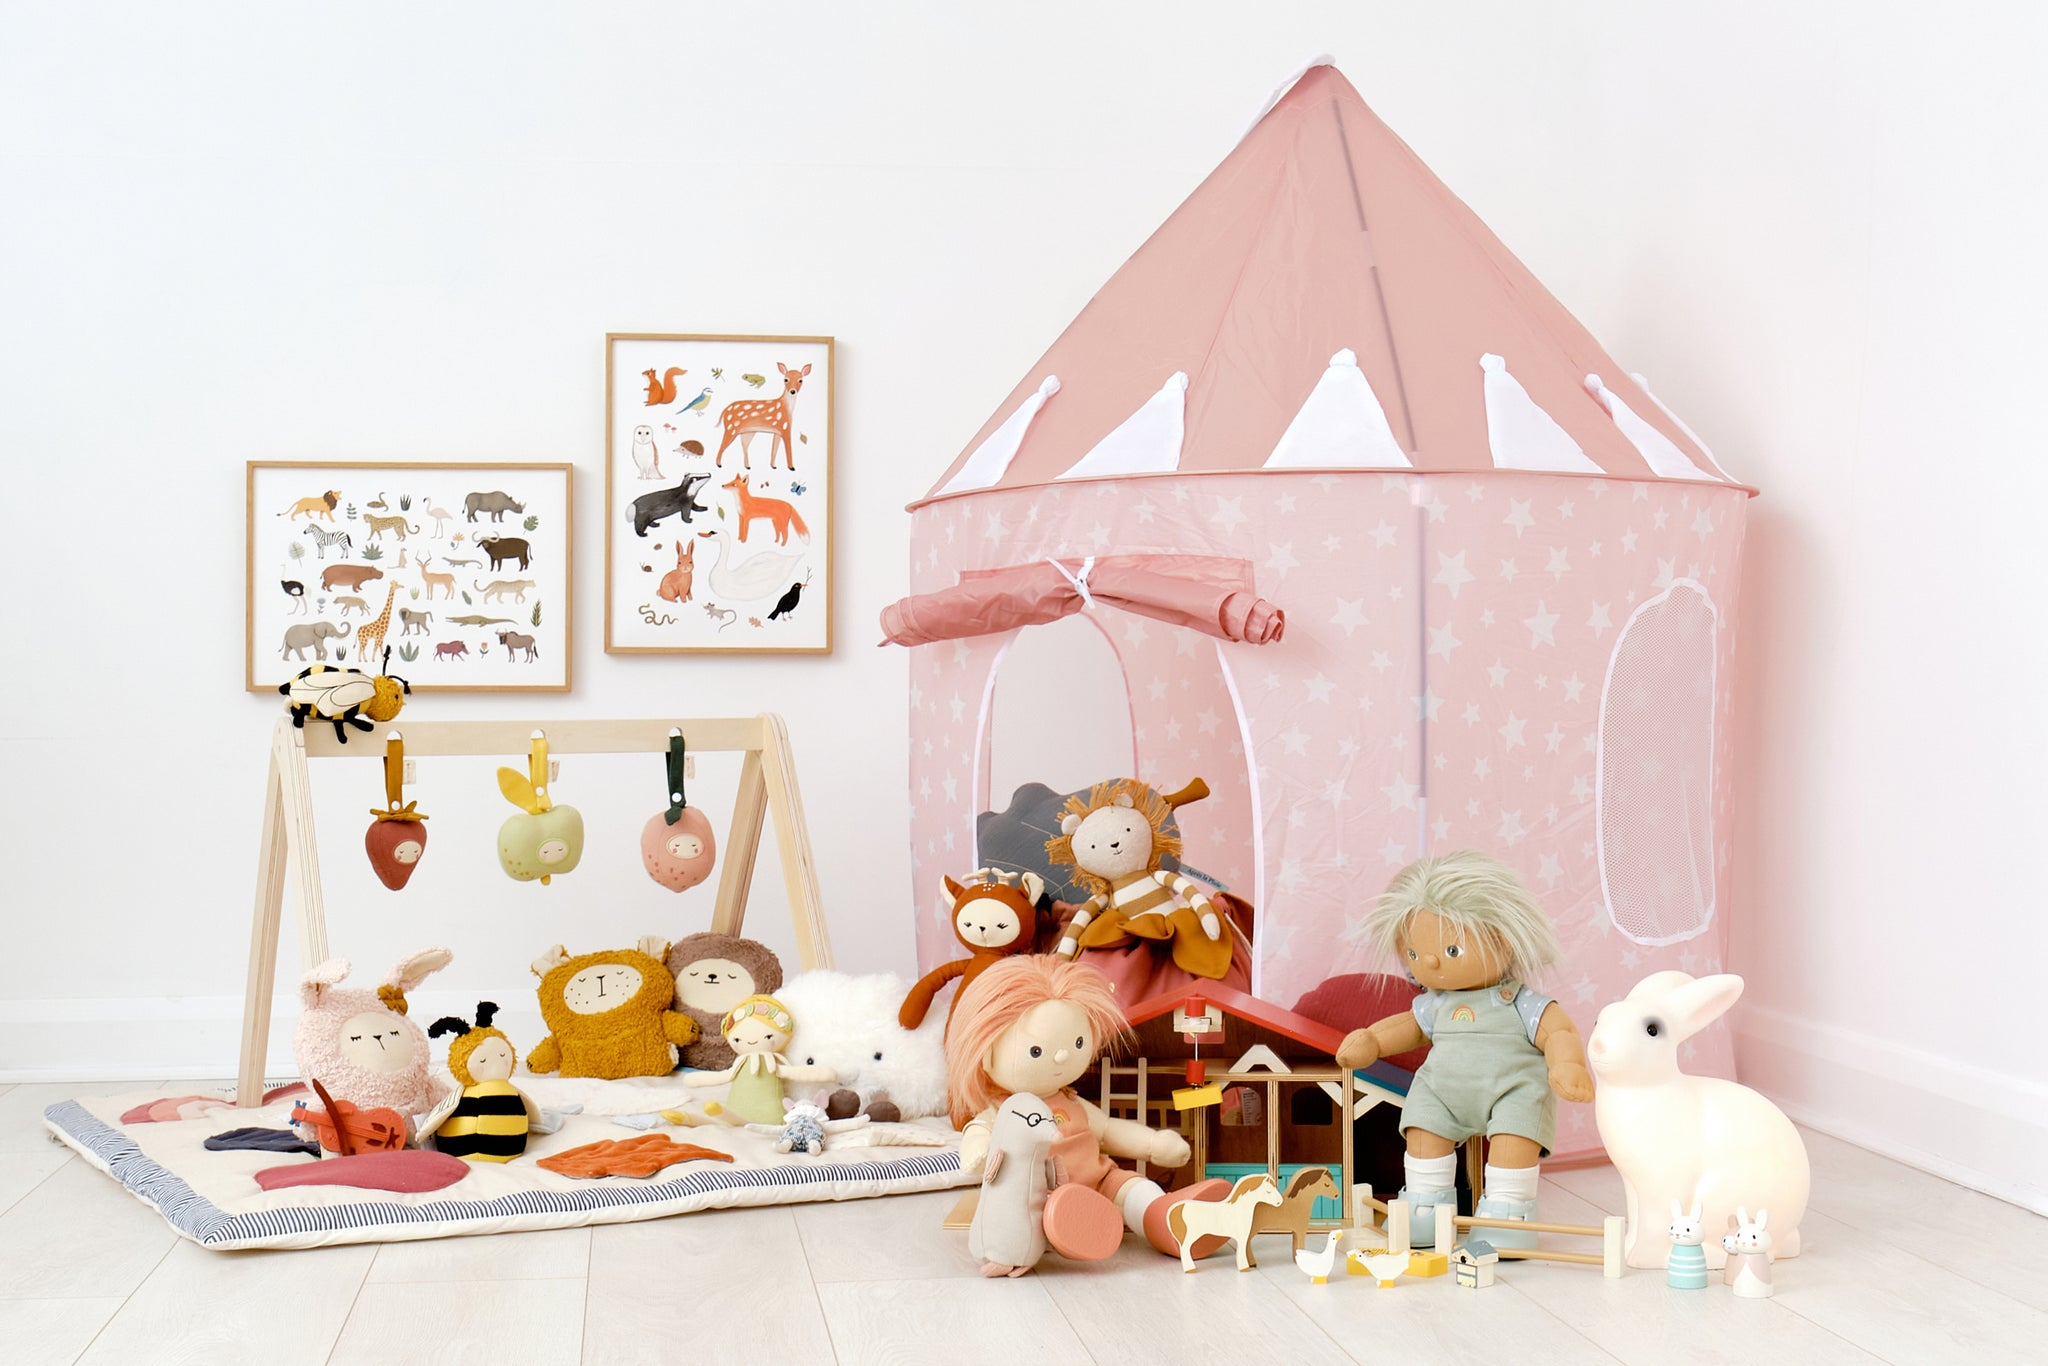 Bunnies and Bumblebees Bedtime Story and Nursery Playroom, by Bobby Rabbit.